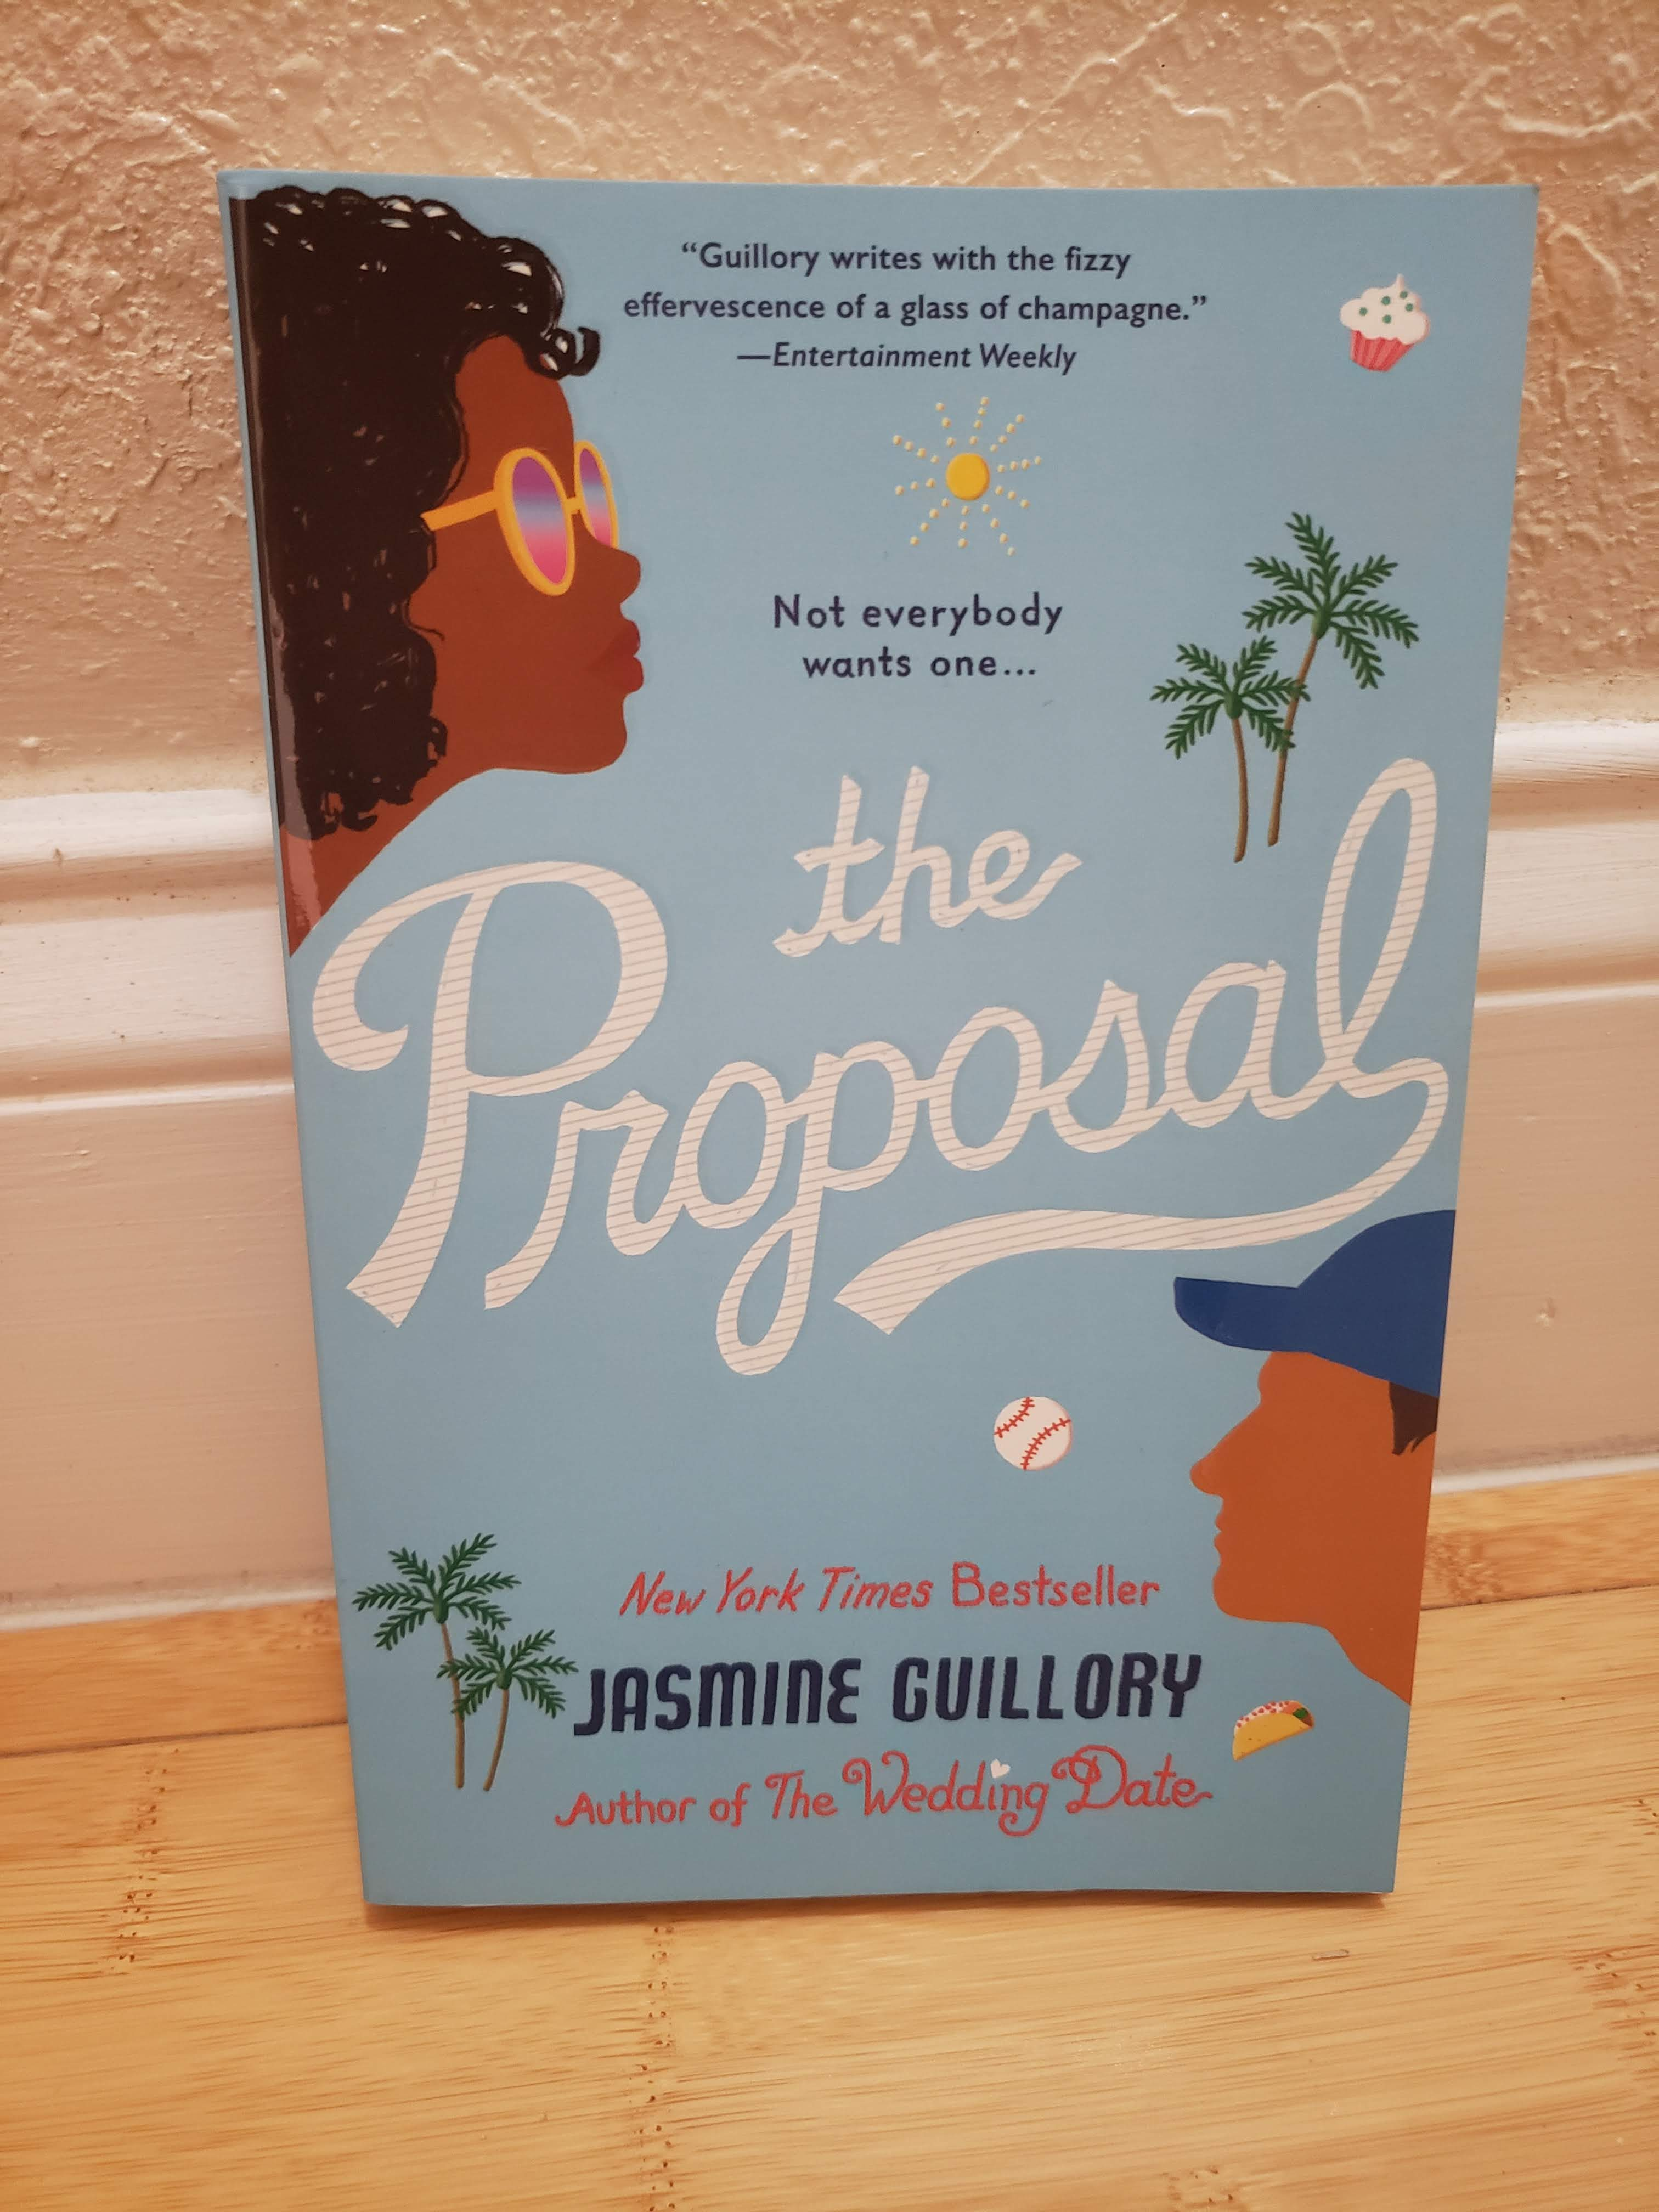 I haven't read The Proposal by Jasmine Guillory yet, but I'm definitely looking forward to reading it this weekend.